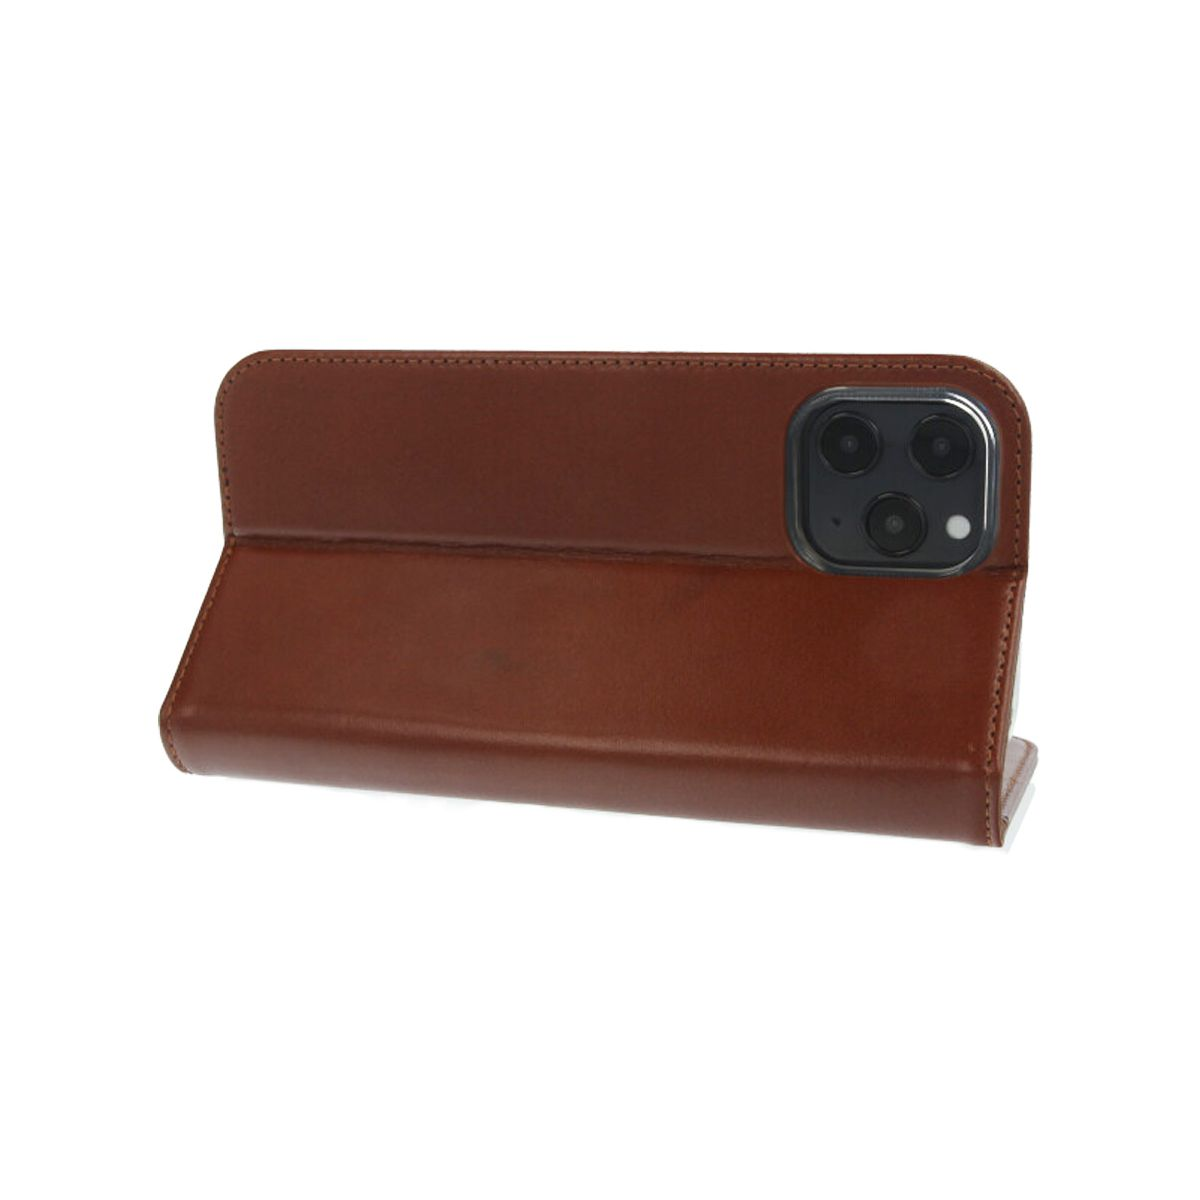 book case classic bruin iphone 12 pro max